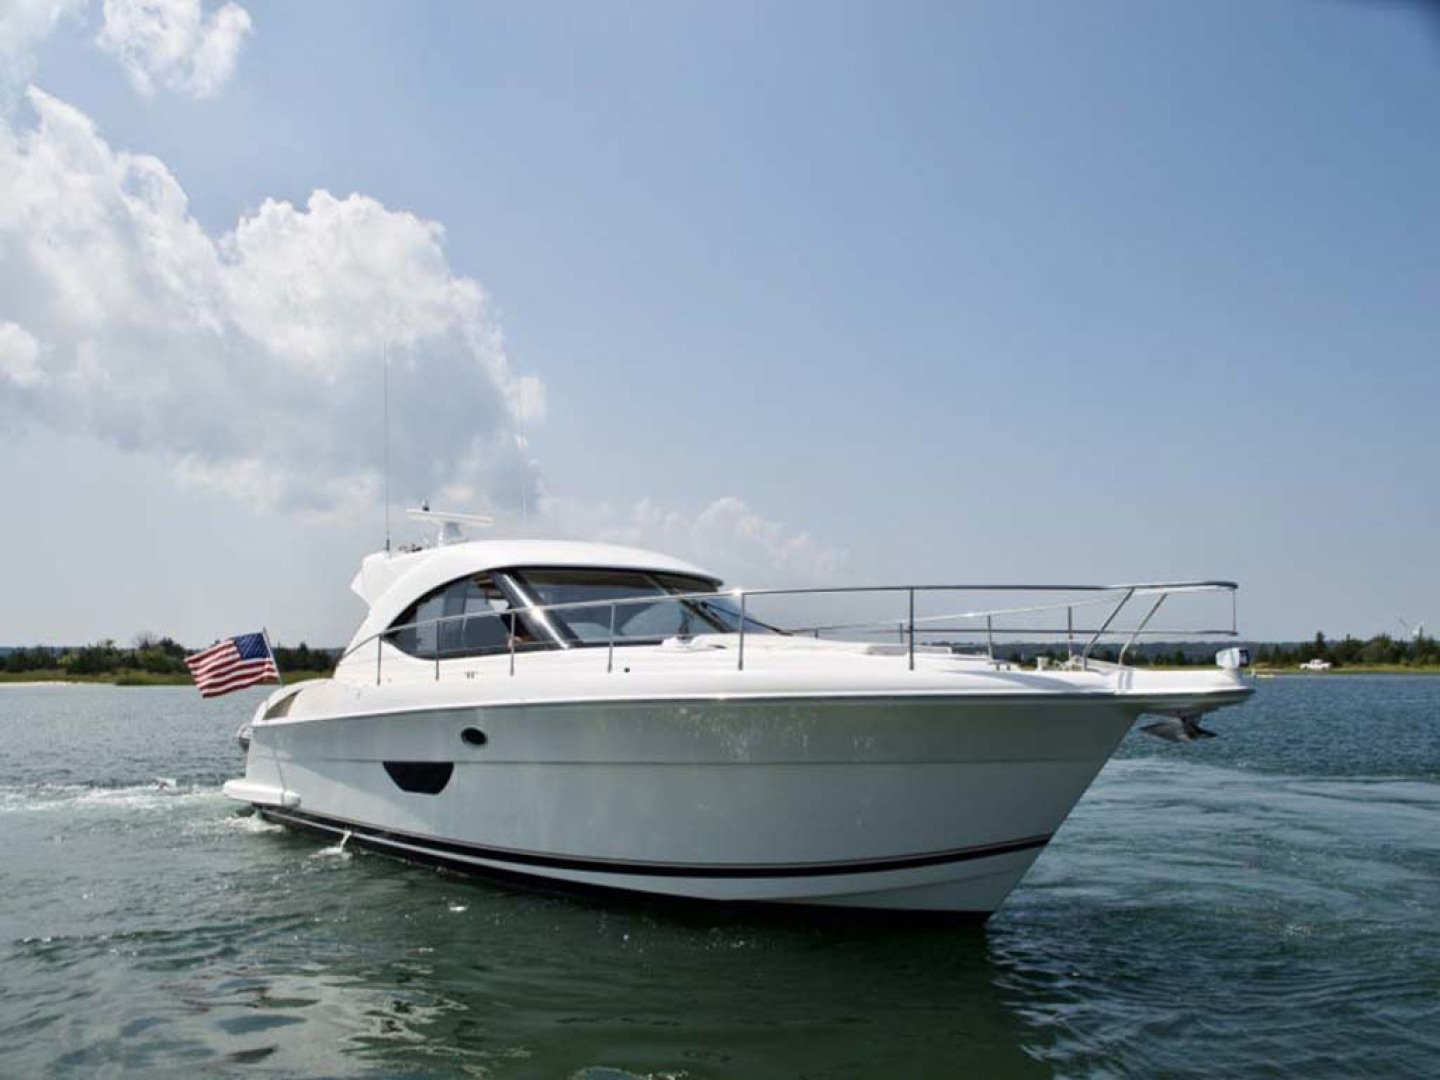 Riviera-4400 Sport Yacht 2009-Soul Mates Long Island-United States-44 Riviera 2009 Starboard Profile-1062526 | Thumbnail